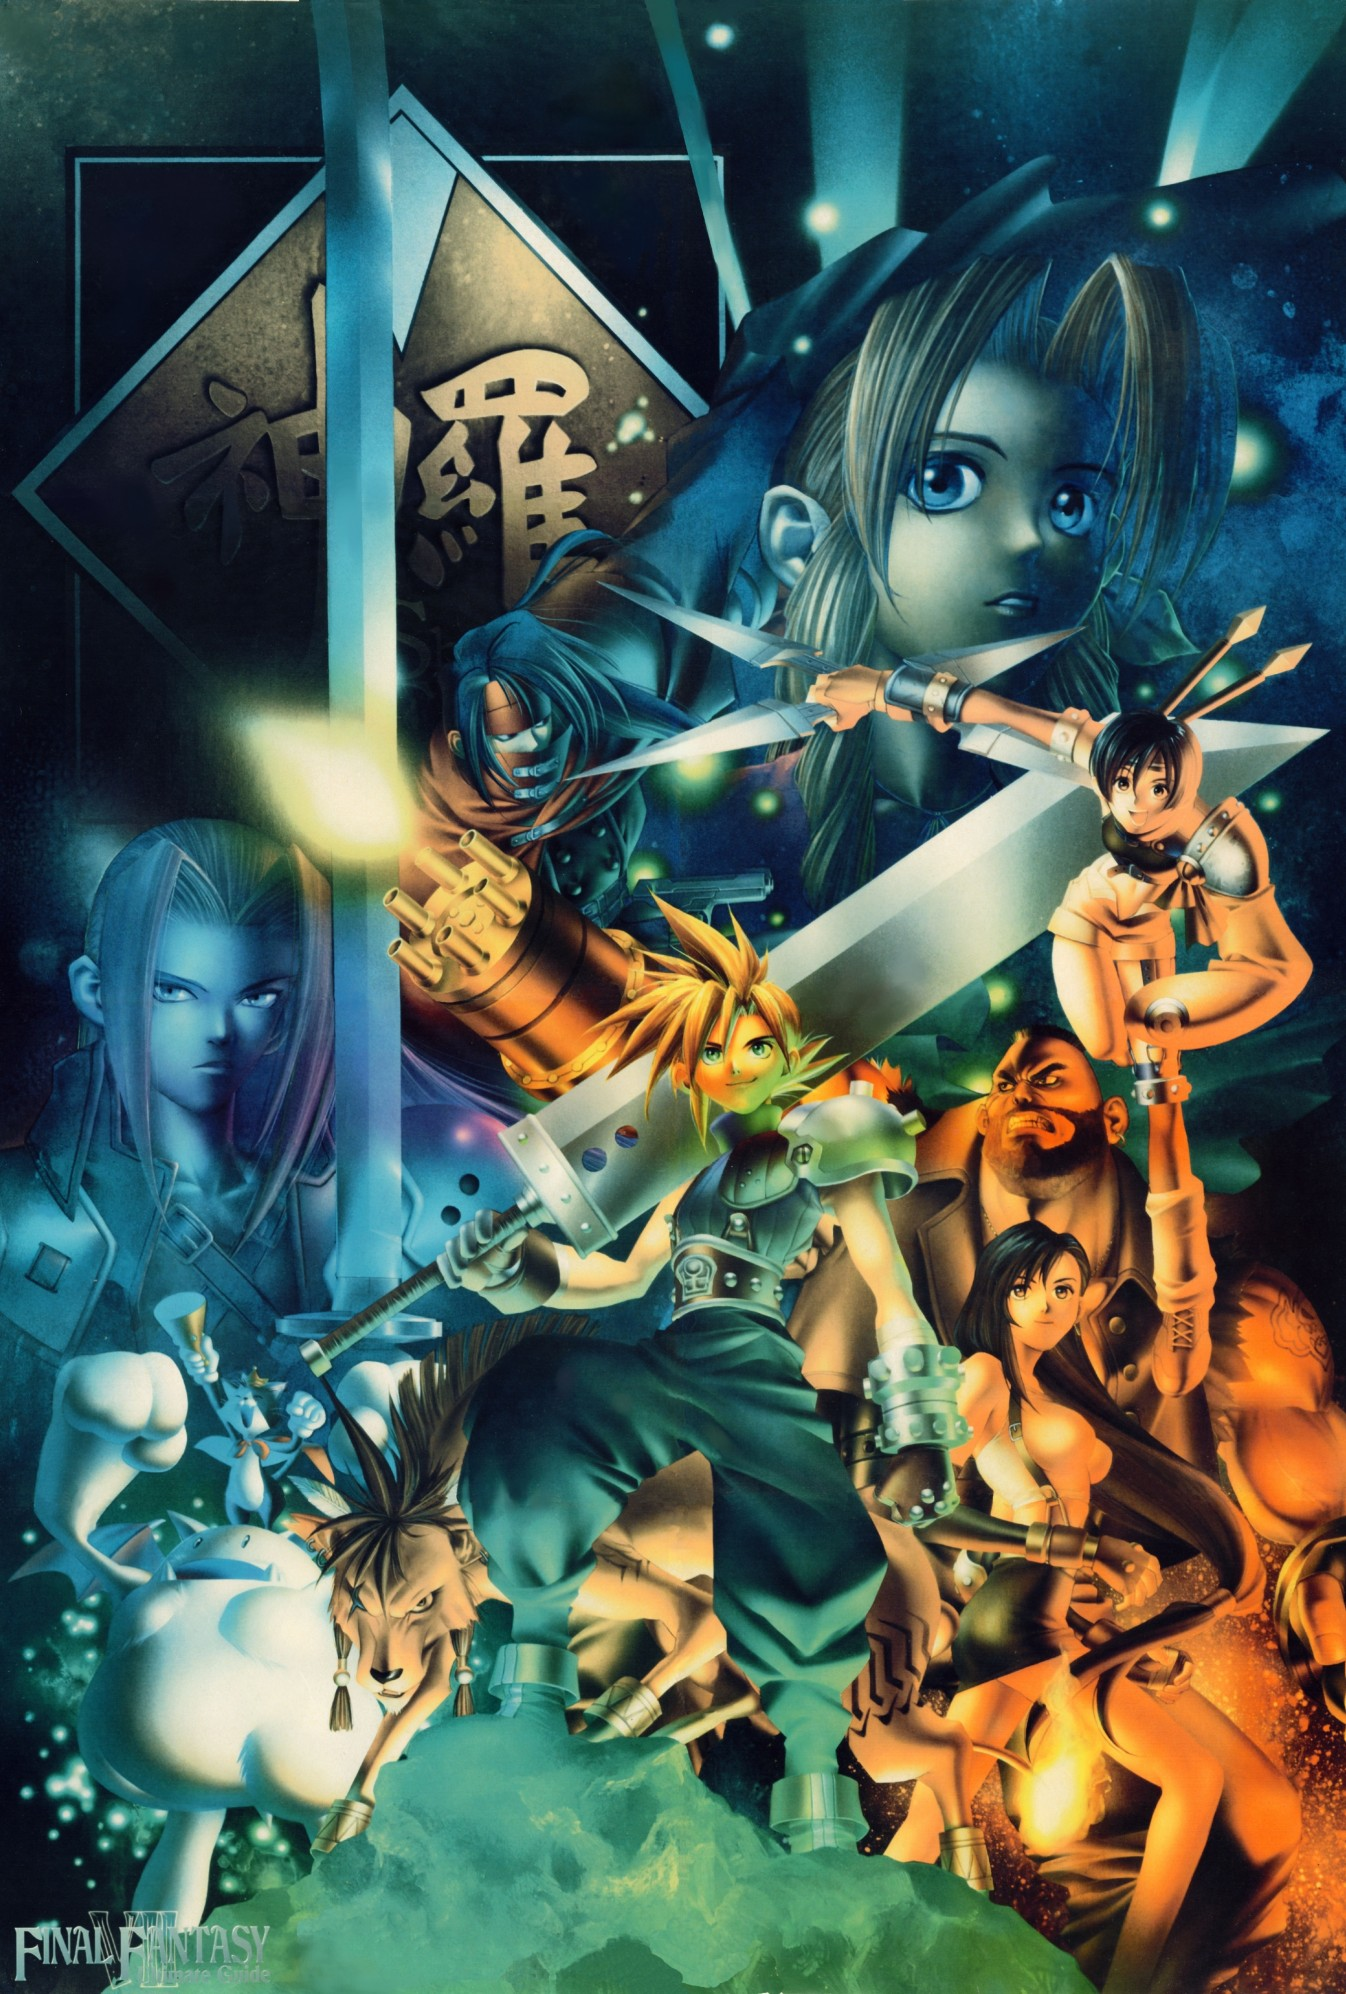 Final Fantasy Vii Mobile Wallpaper 19795 Zerochan Anime Image Board